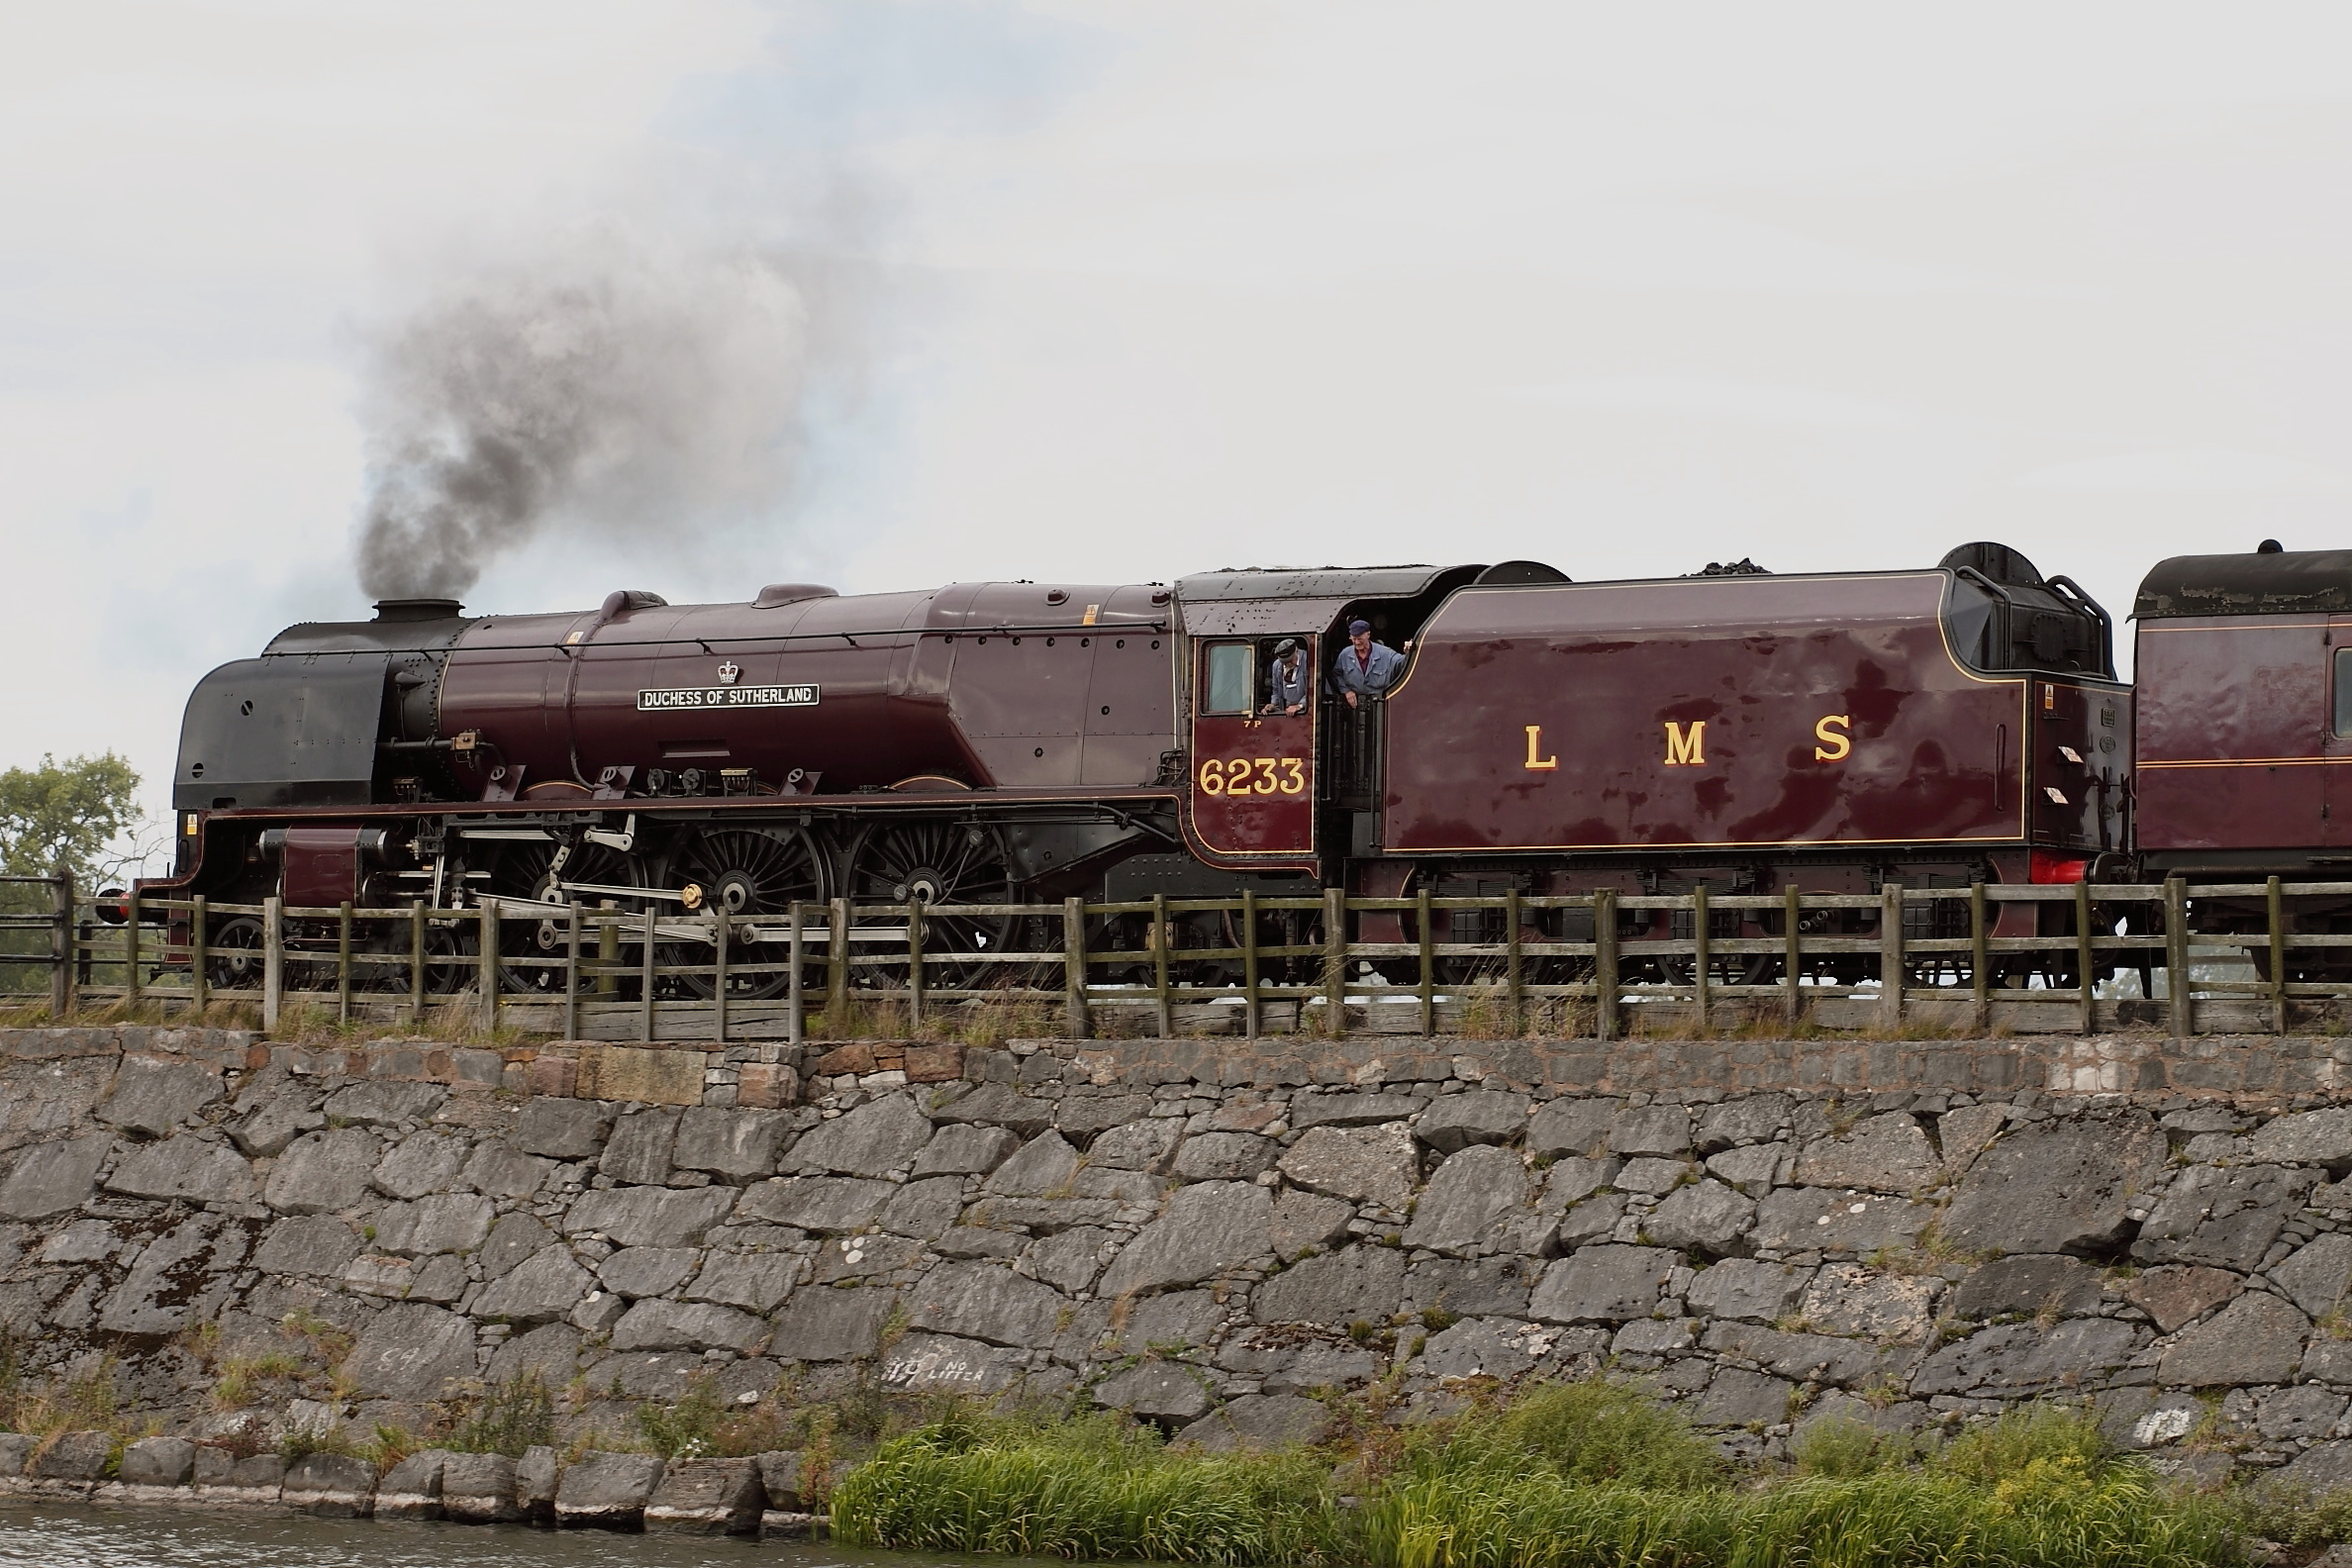 smoke trains LMS rivers HD Wallpaper